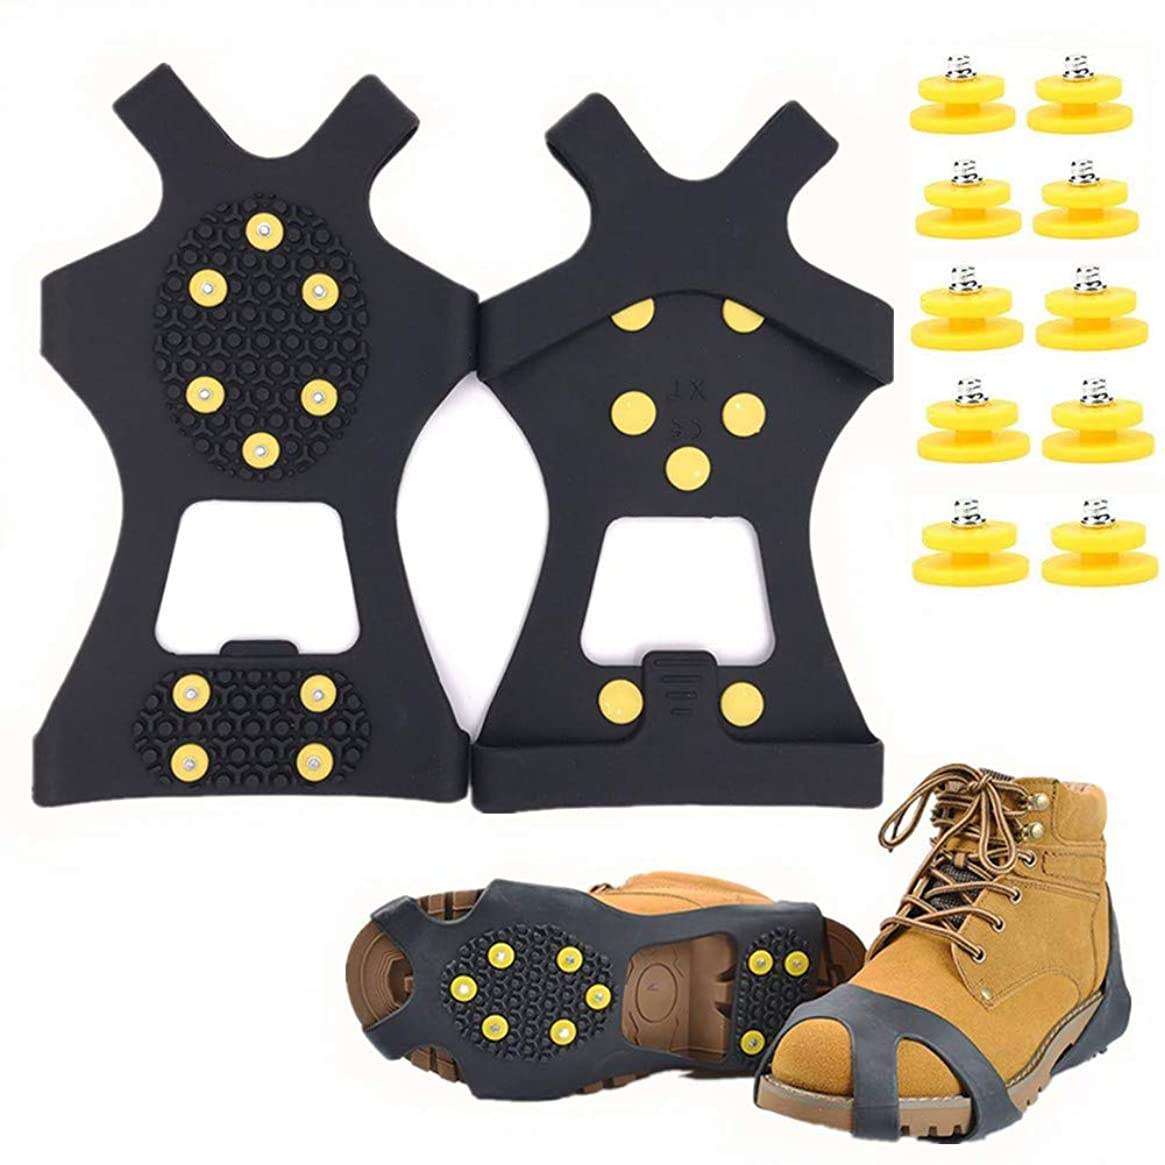 Fiersh Snow Grippers Ice Cleats - Snow Grips Crampons Anti-Slip Traction Cleats Ice Grippers for Shoes and Boots - 10 Steel Studs Slip-on Stretch Footwear for Women Men Kids (Extra 10 Studs)